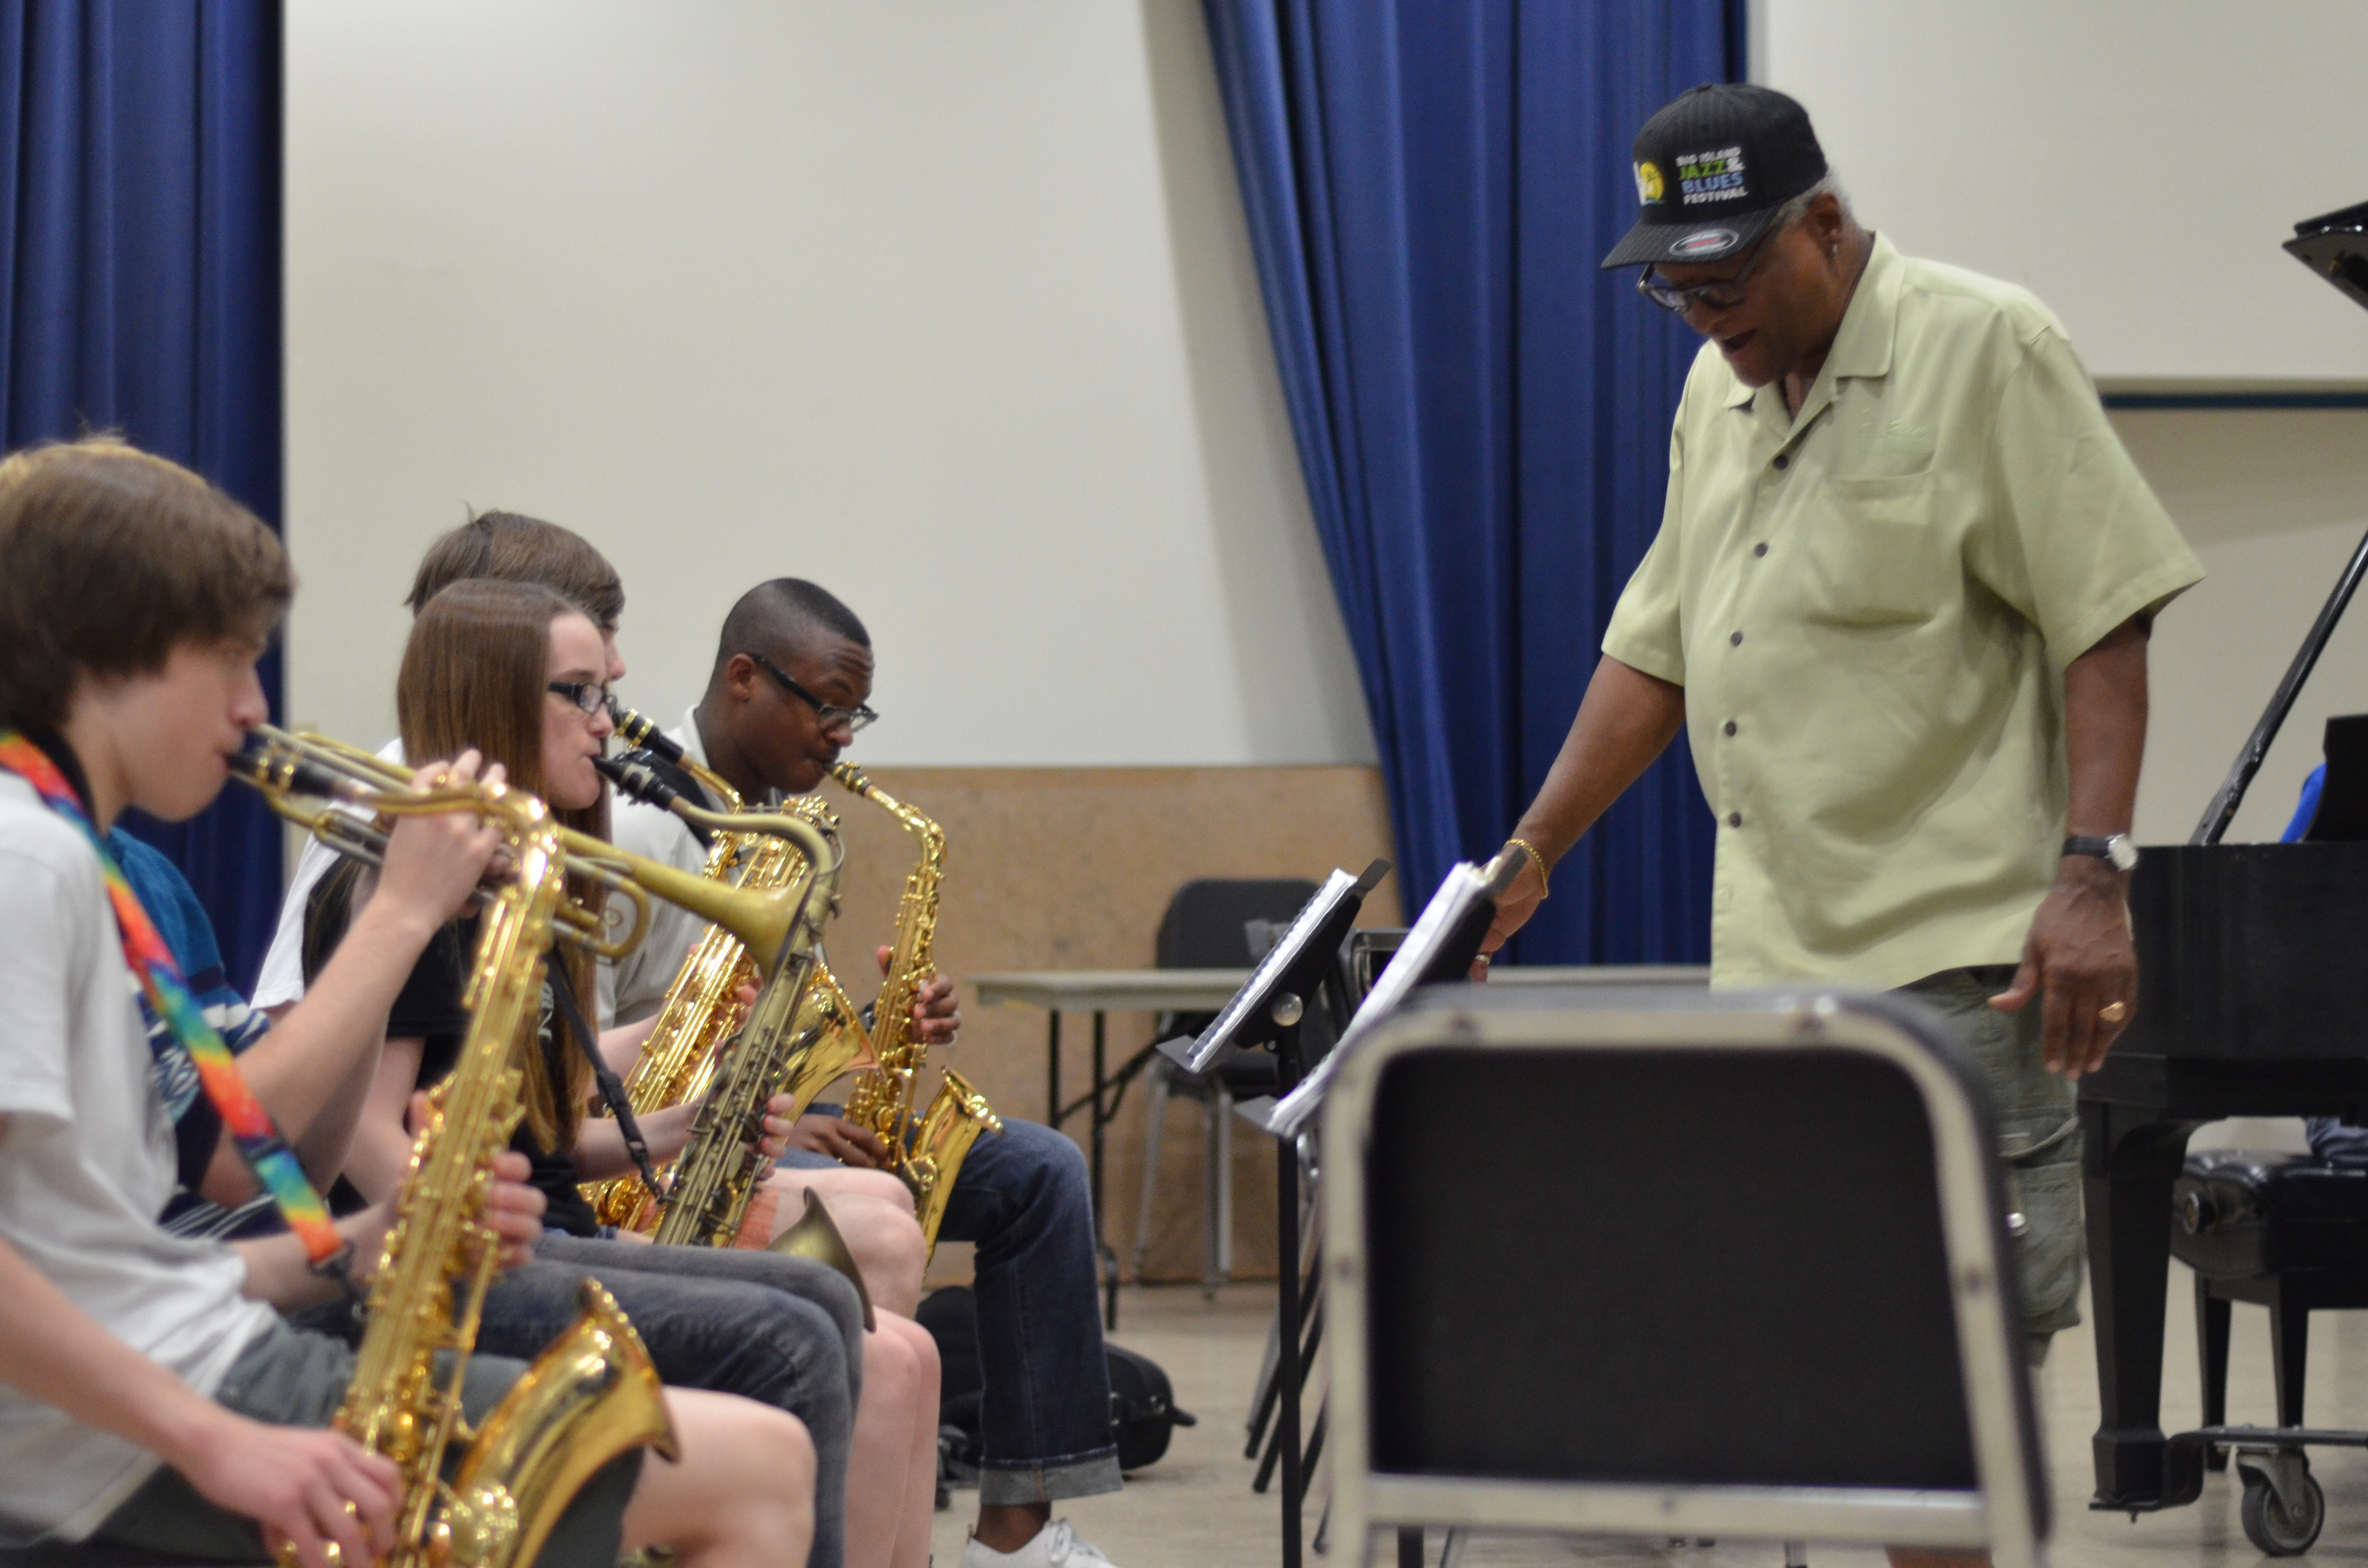 Jazz Camp participants in rehearsal